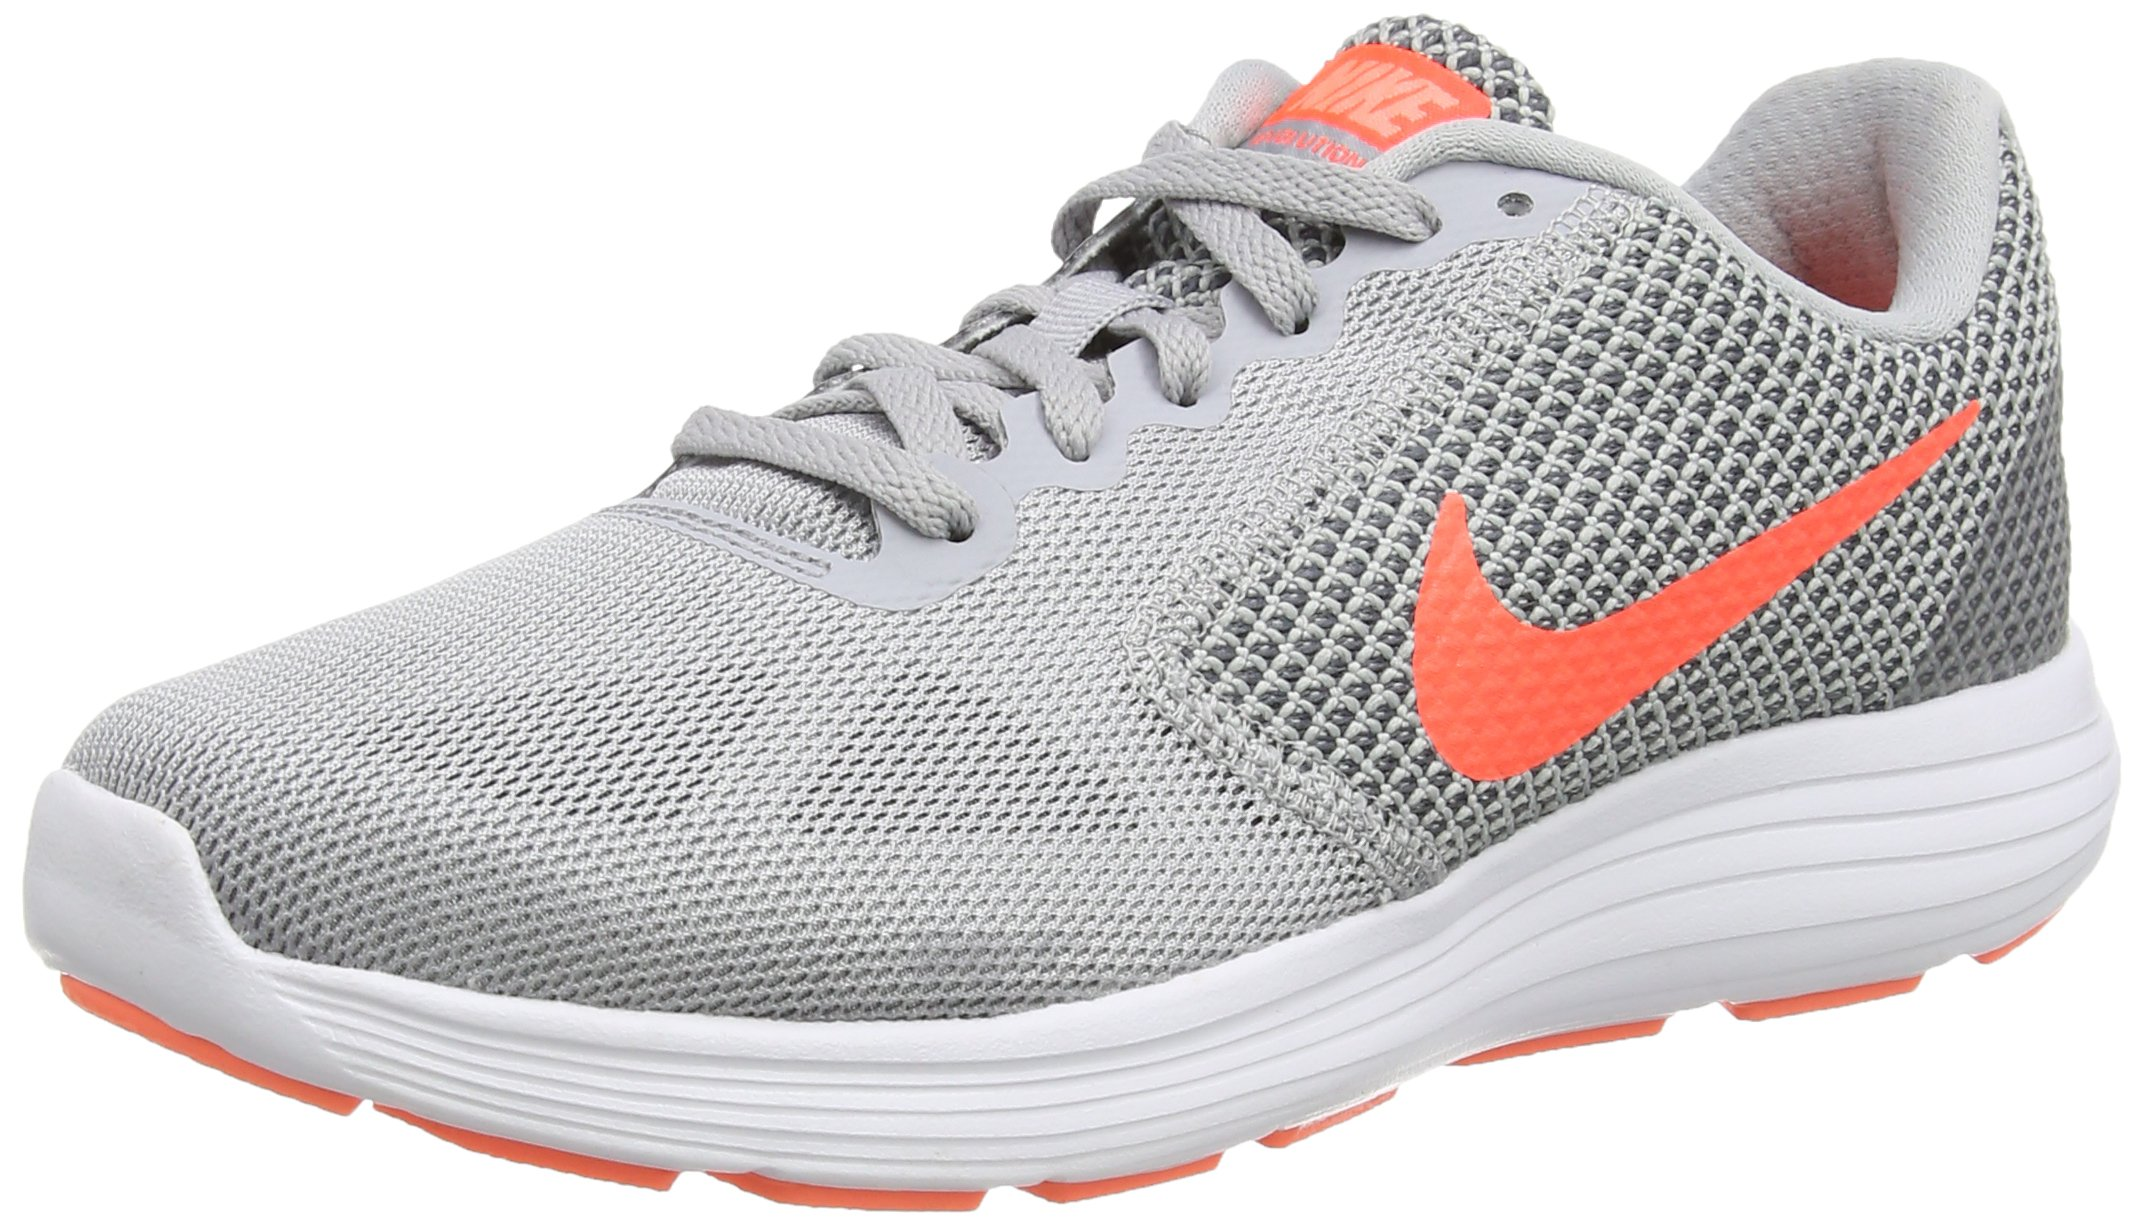 NIKE WMNS Revolution 3 Women Round Toe Synthetic Running Shoe Wolf Grey/Cool Grey/Atomic Pink/Hyper Orange 5 B(M) US